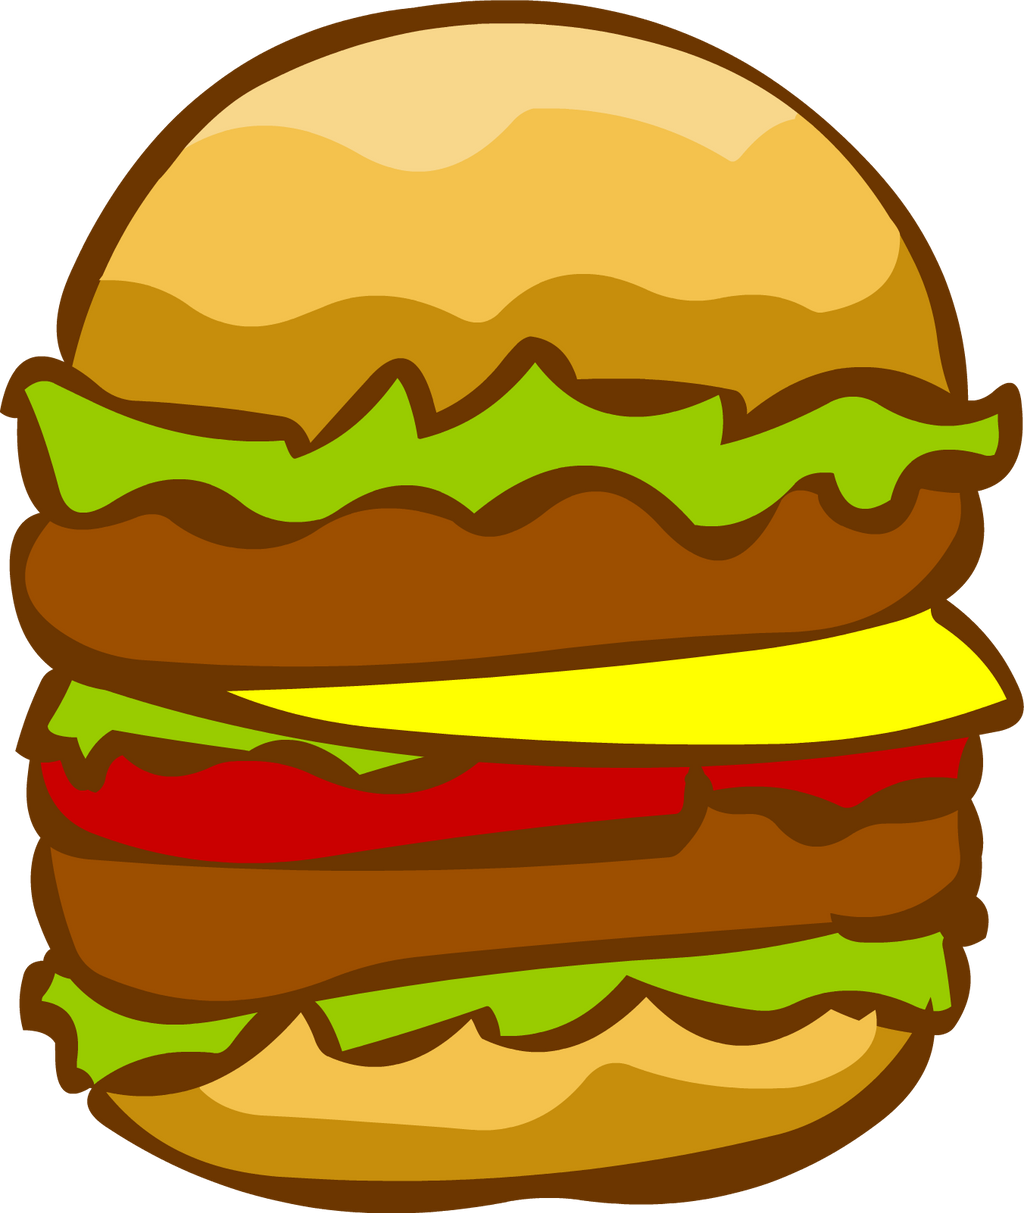 double burger by rottenpot on deviantart bbq grill clipart free bbq clipart free download